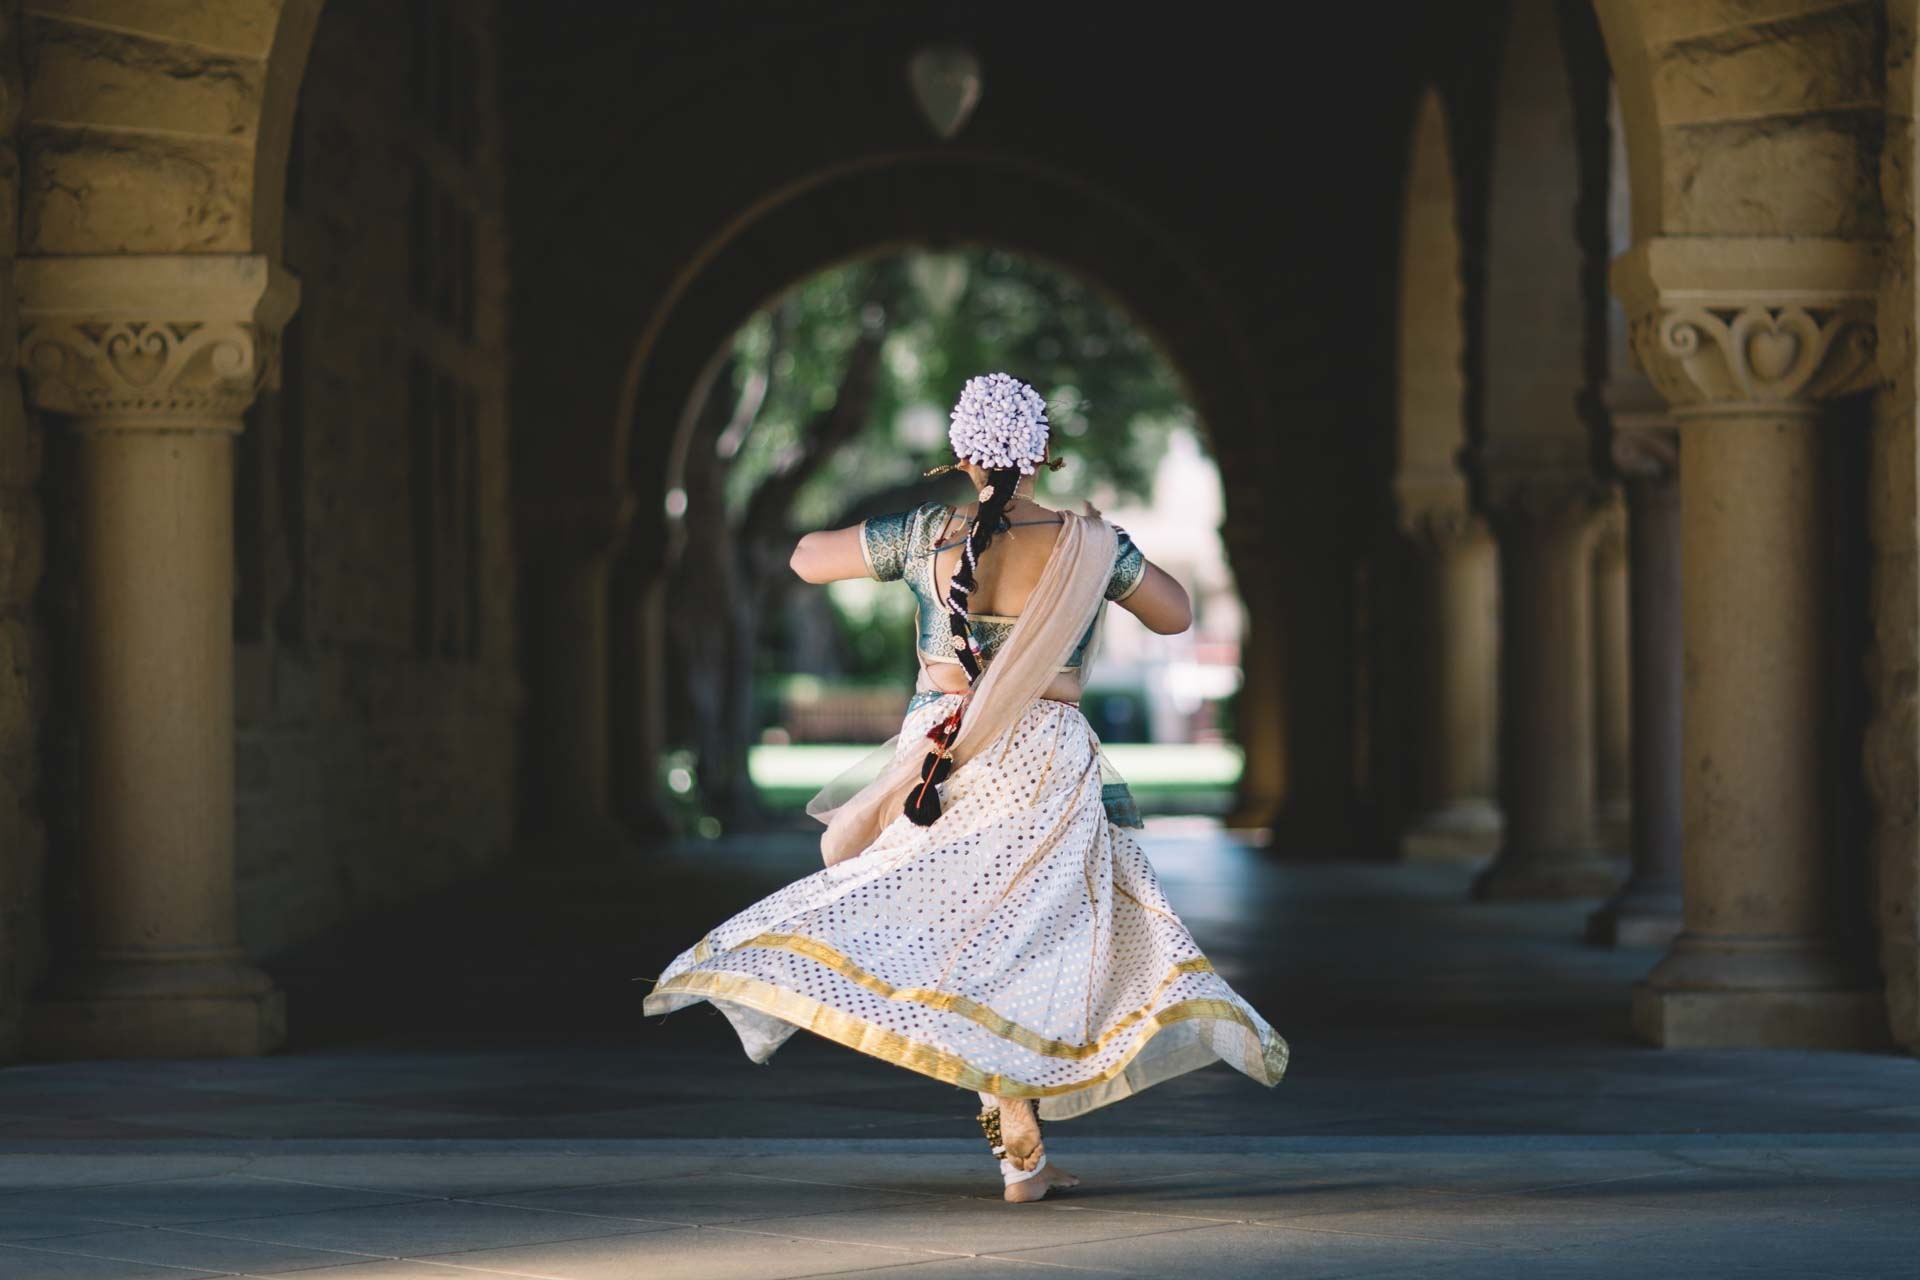 Travel Inspiration for Dancers & Dance Lovers